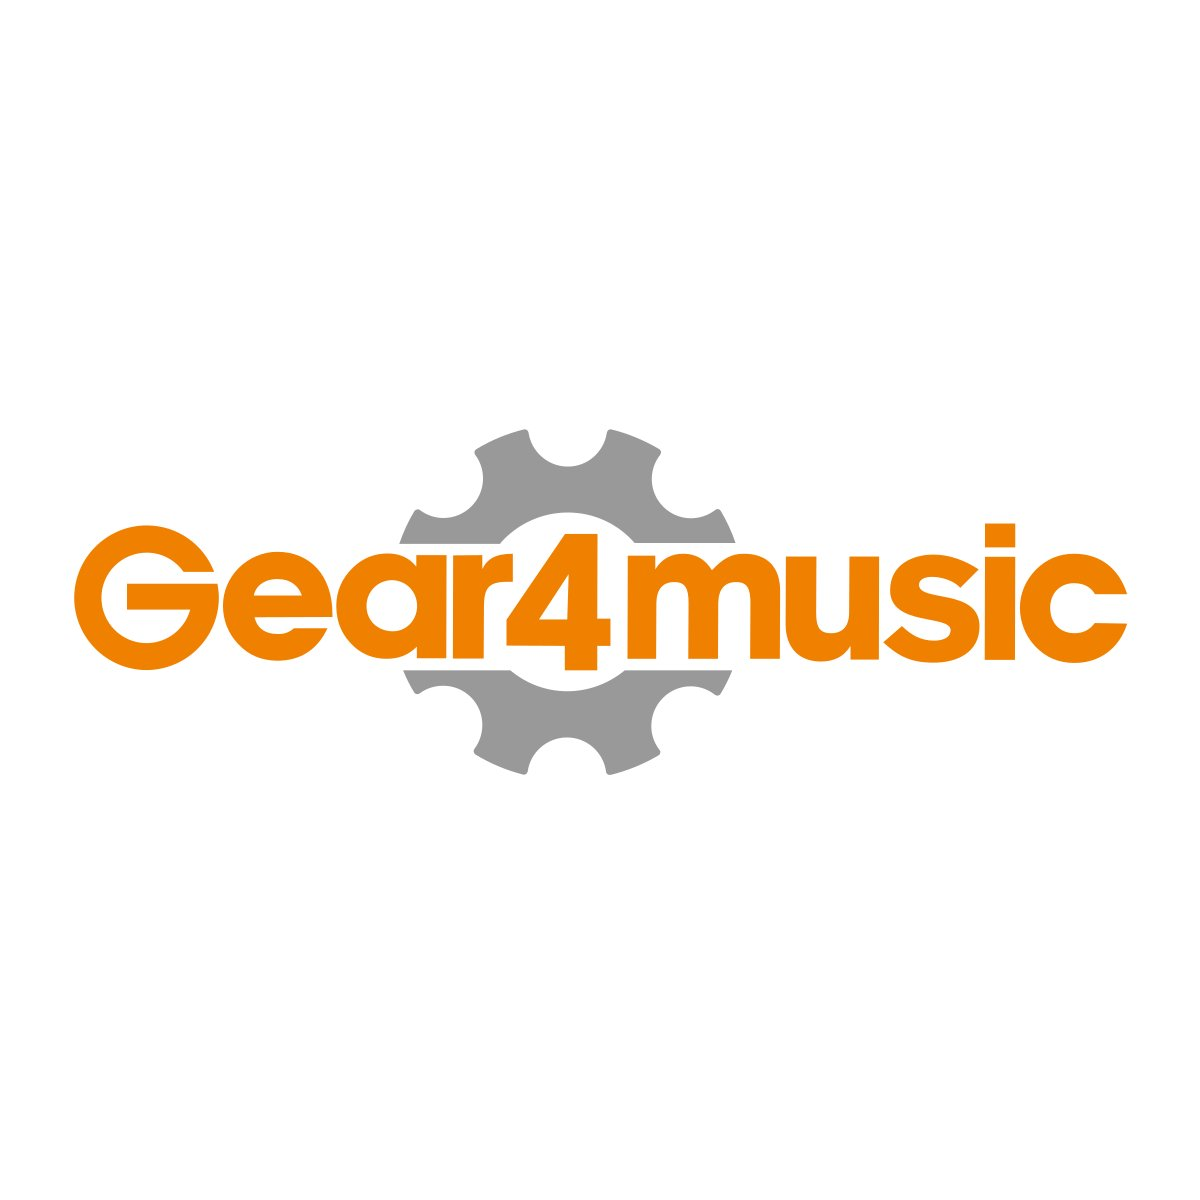 Pack de 3 Micrófonos de Gear4music